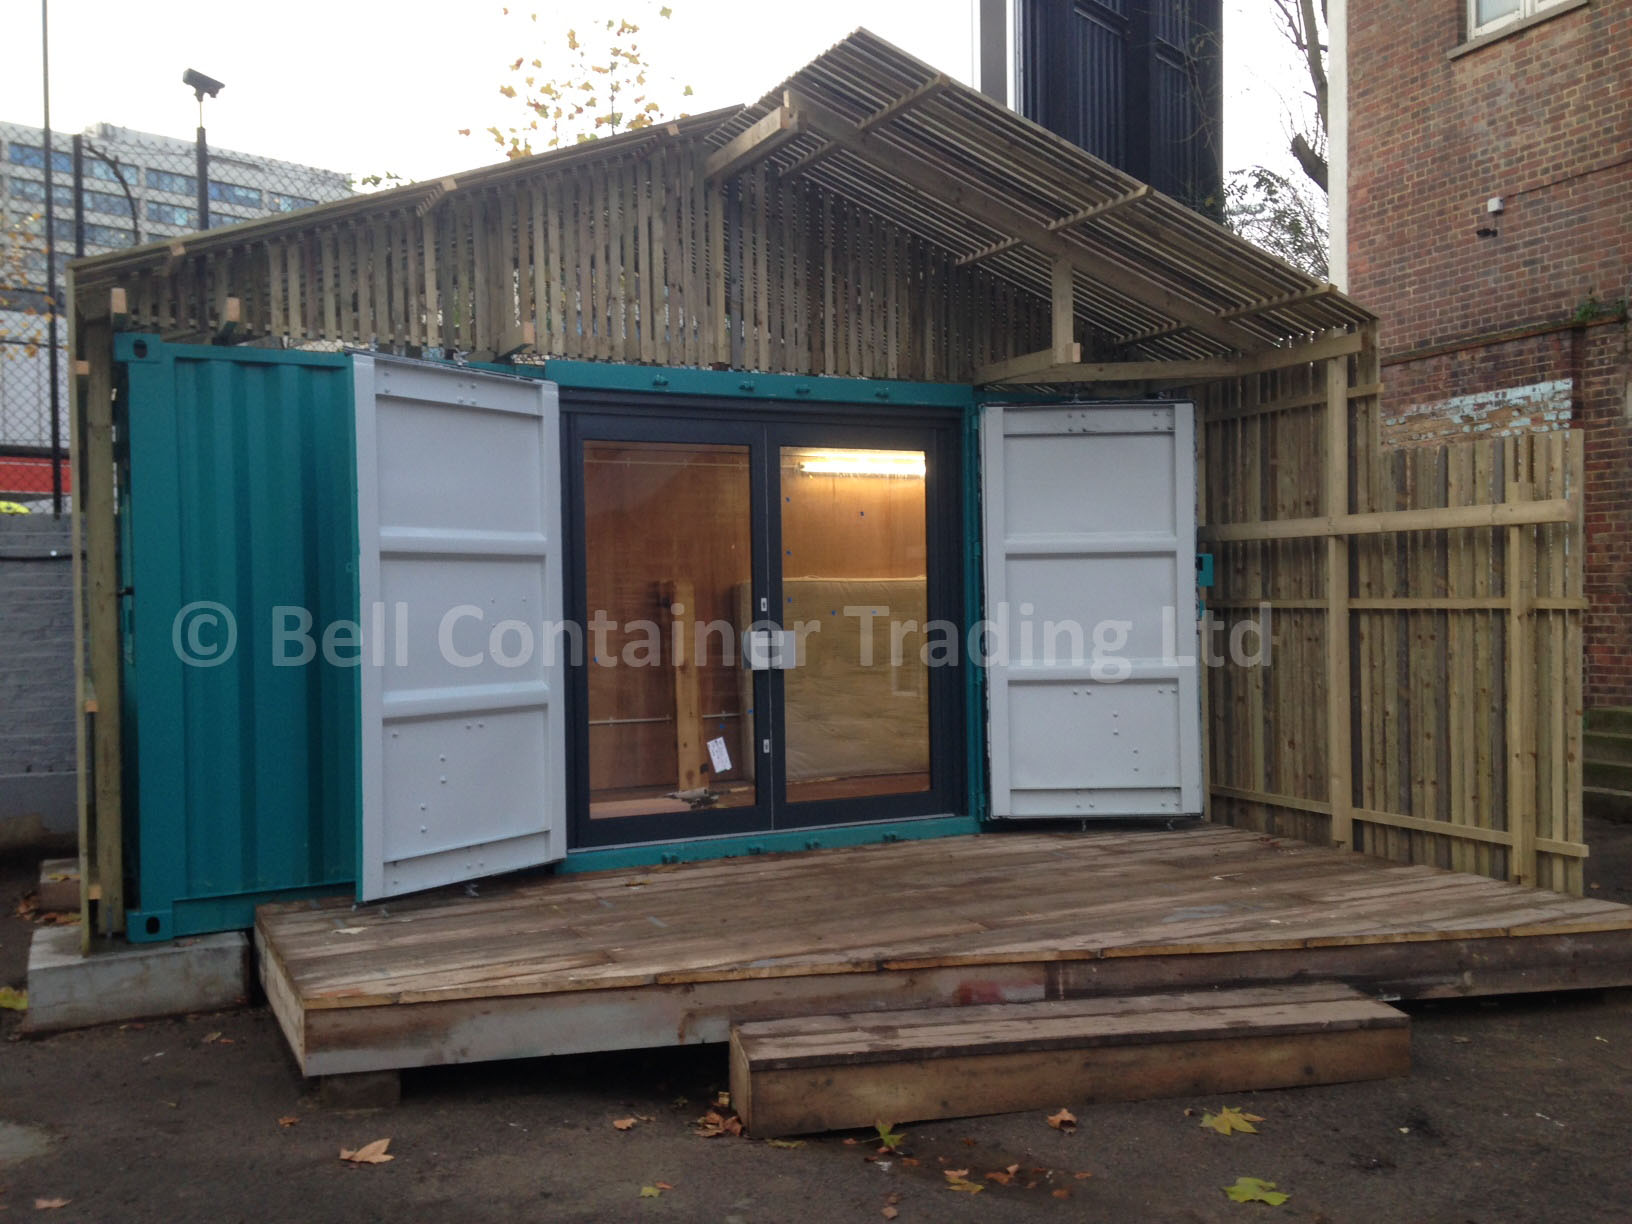 shipping container shop on-site London